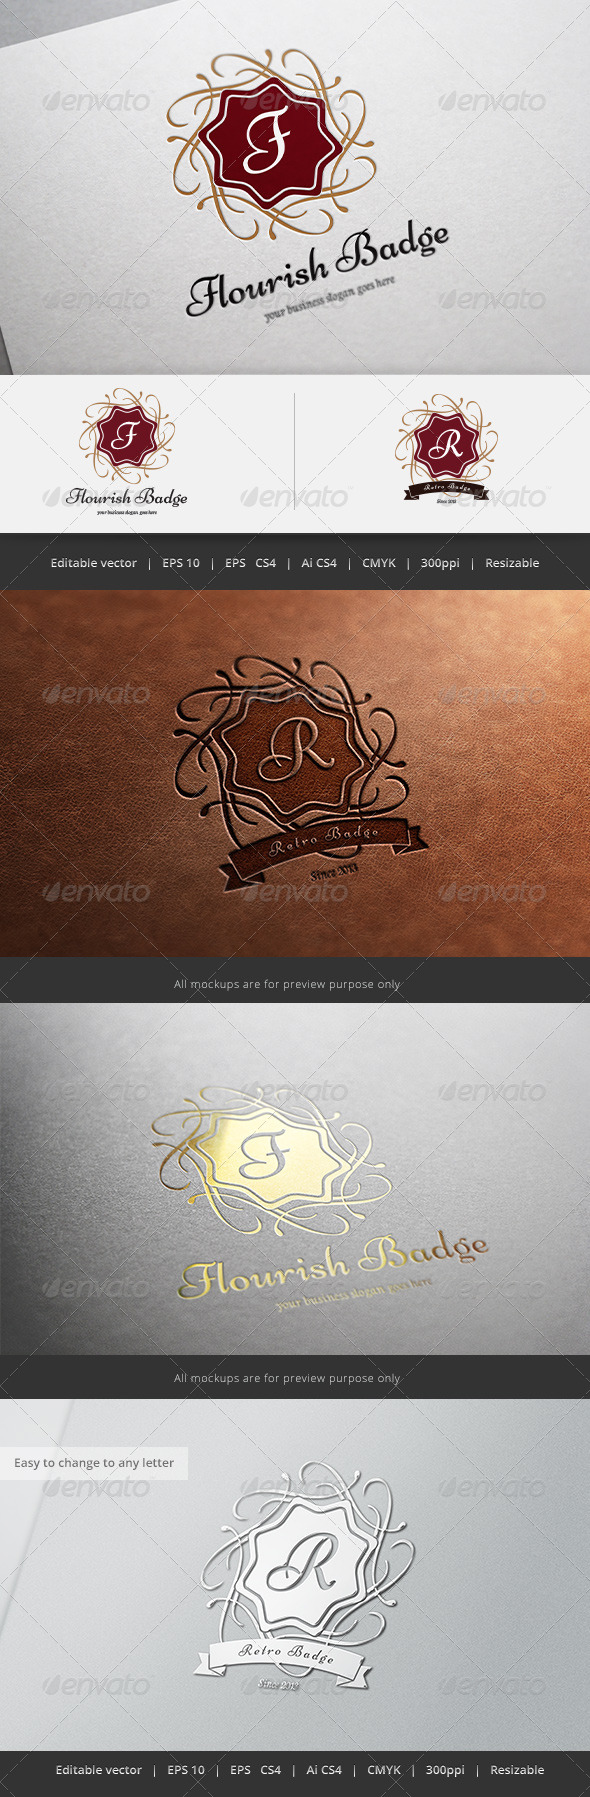 GraphicRiver Flourish Retro Badge Logo 5666275